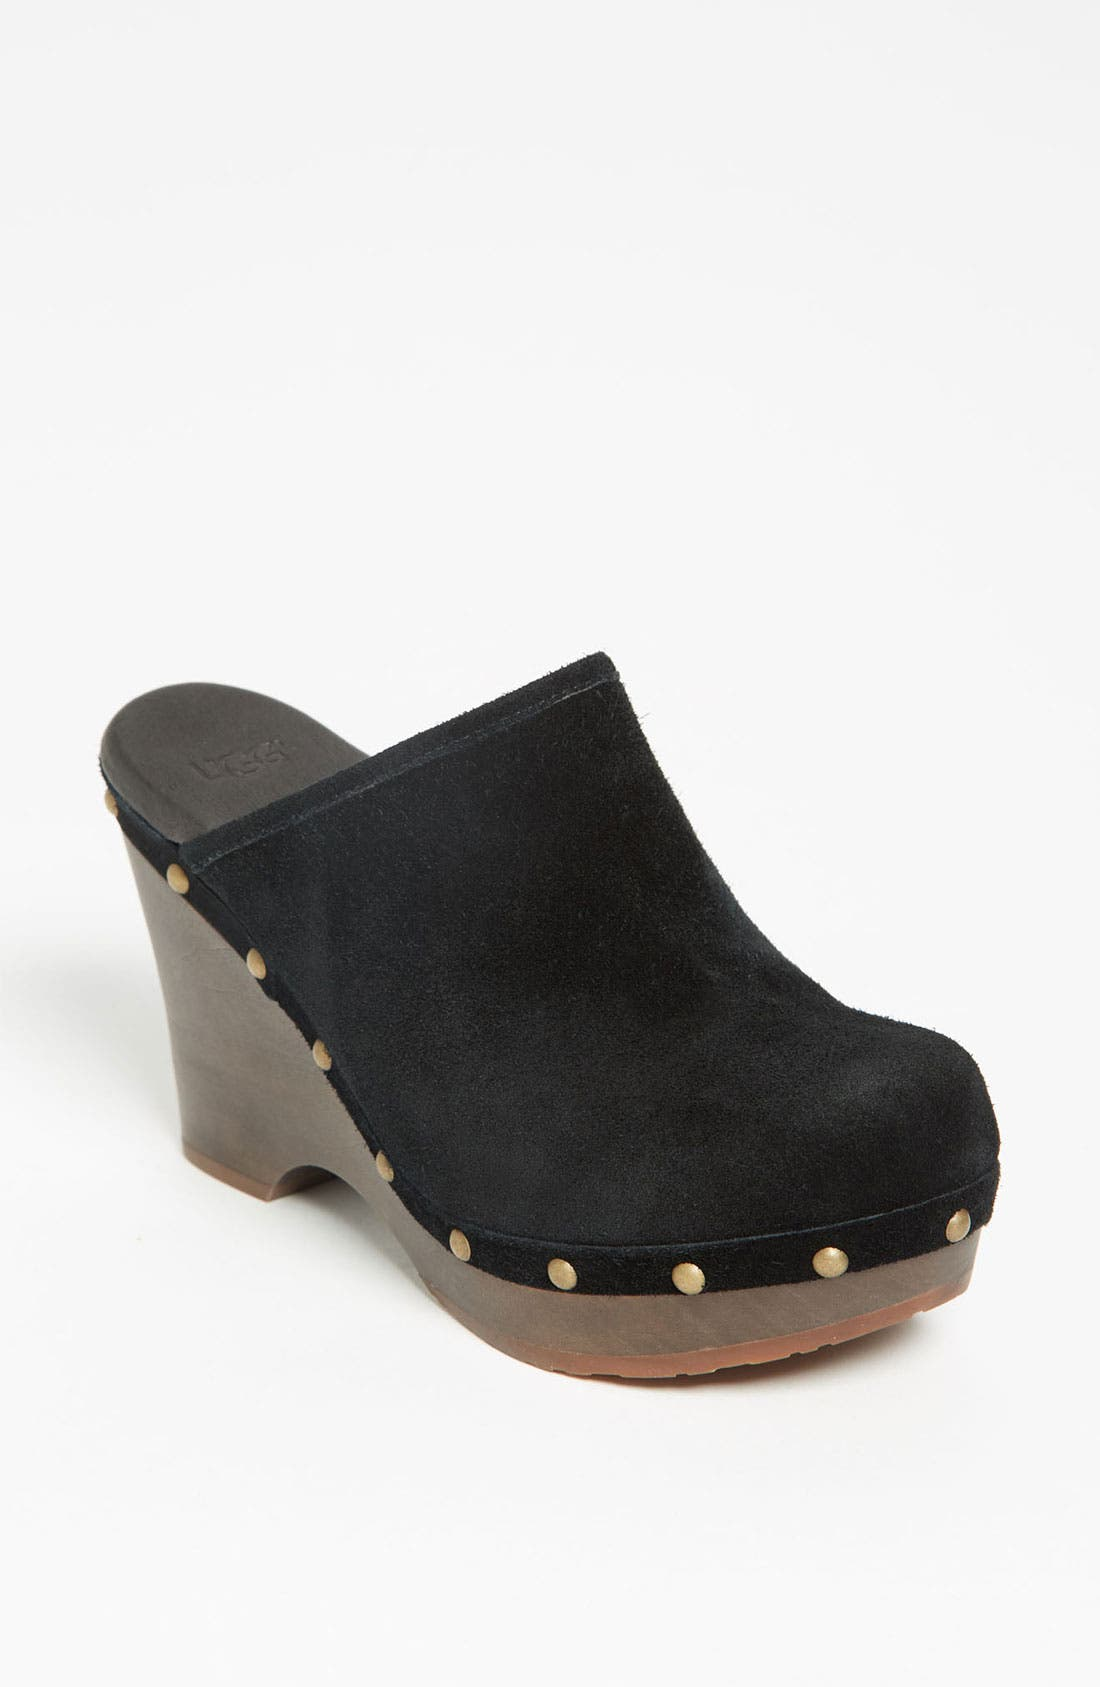 Alternate Image 1 Selected - UGG® Australia 'Marsalis' Clog (Women)